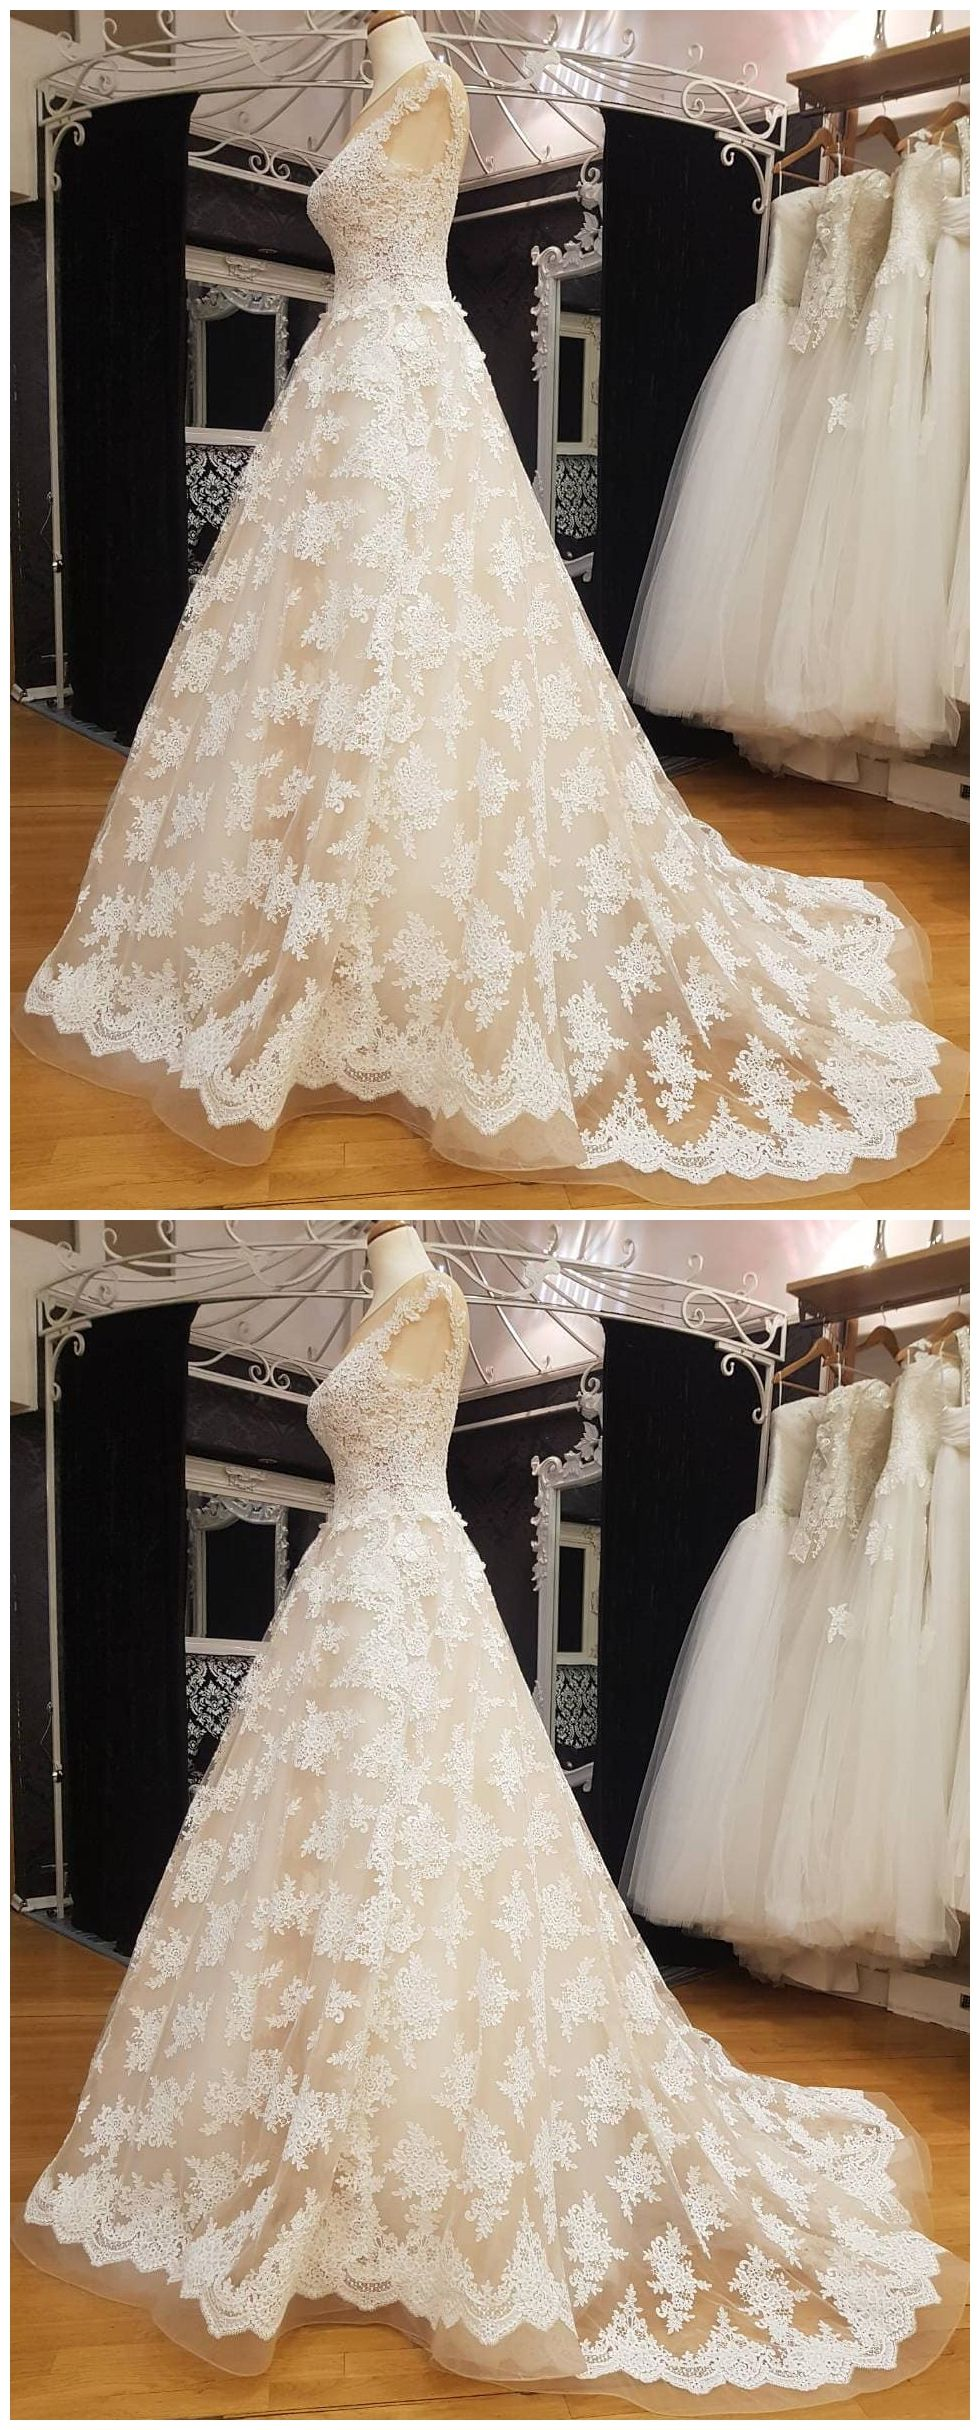 Lace ball gown wedding dresses vintage cheap bridal dresses awd